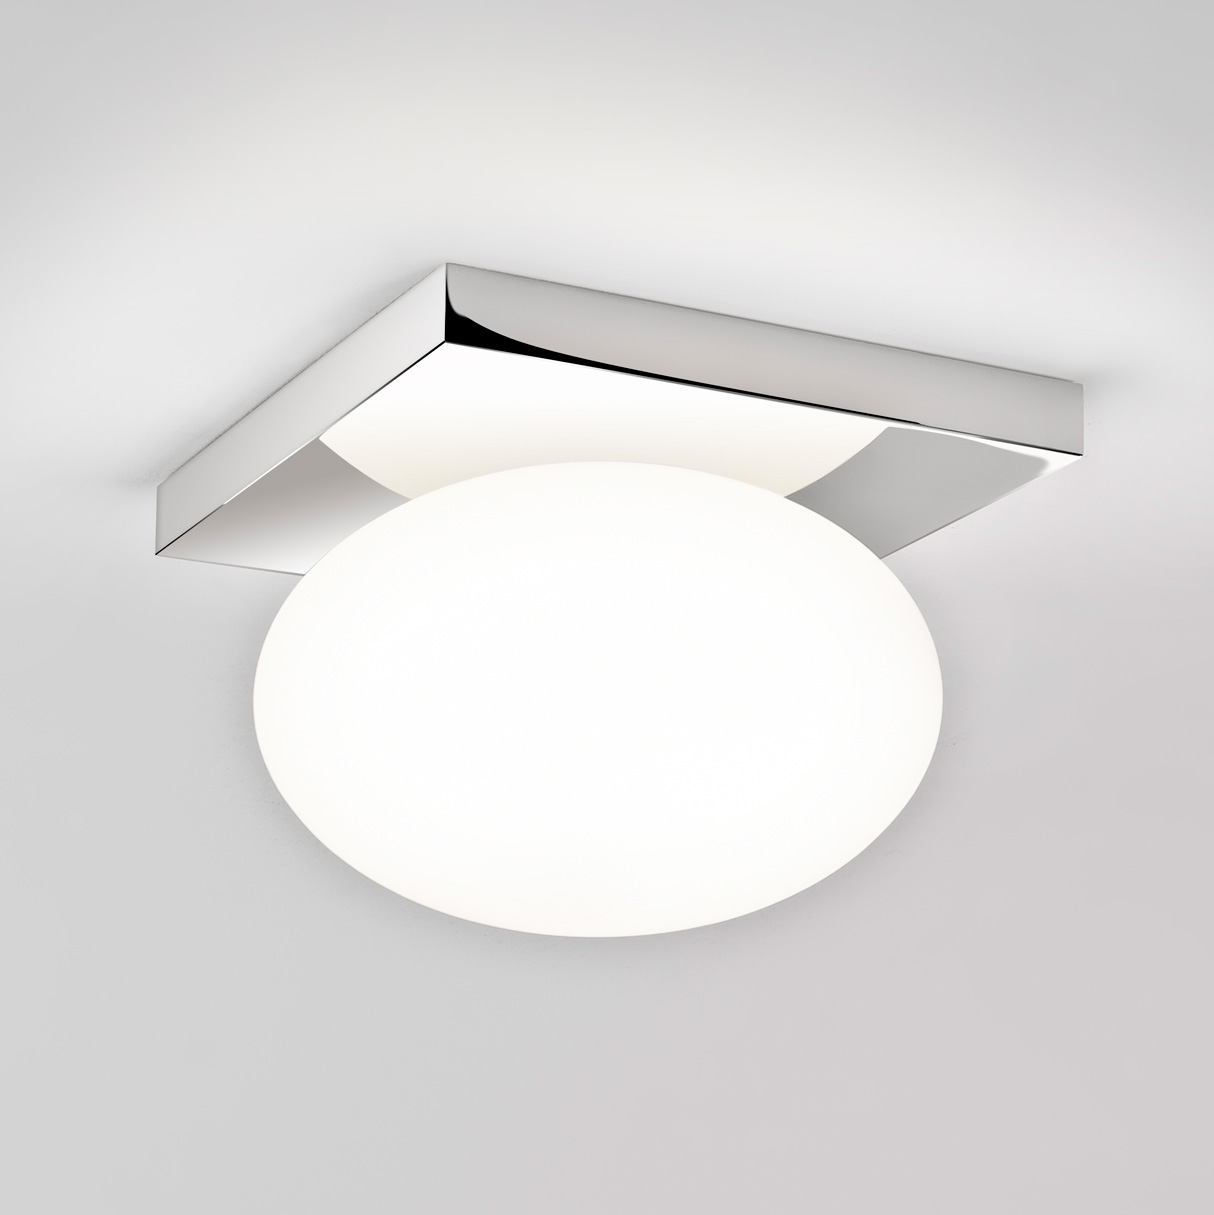 Astro castiro 225 7014 bathroom glass oval ceiling light 60w e27 ip44 chrome - Lampe salle de bain ikea ...